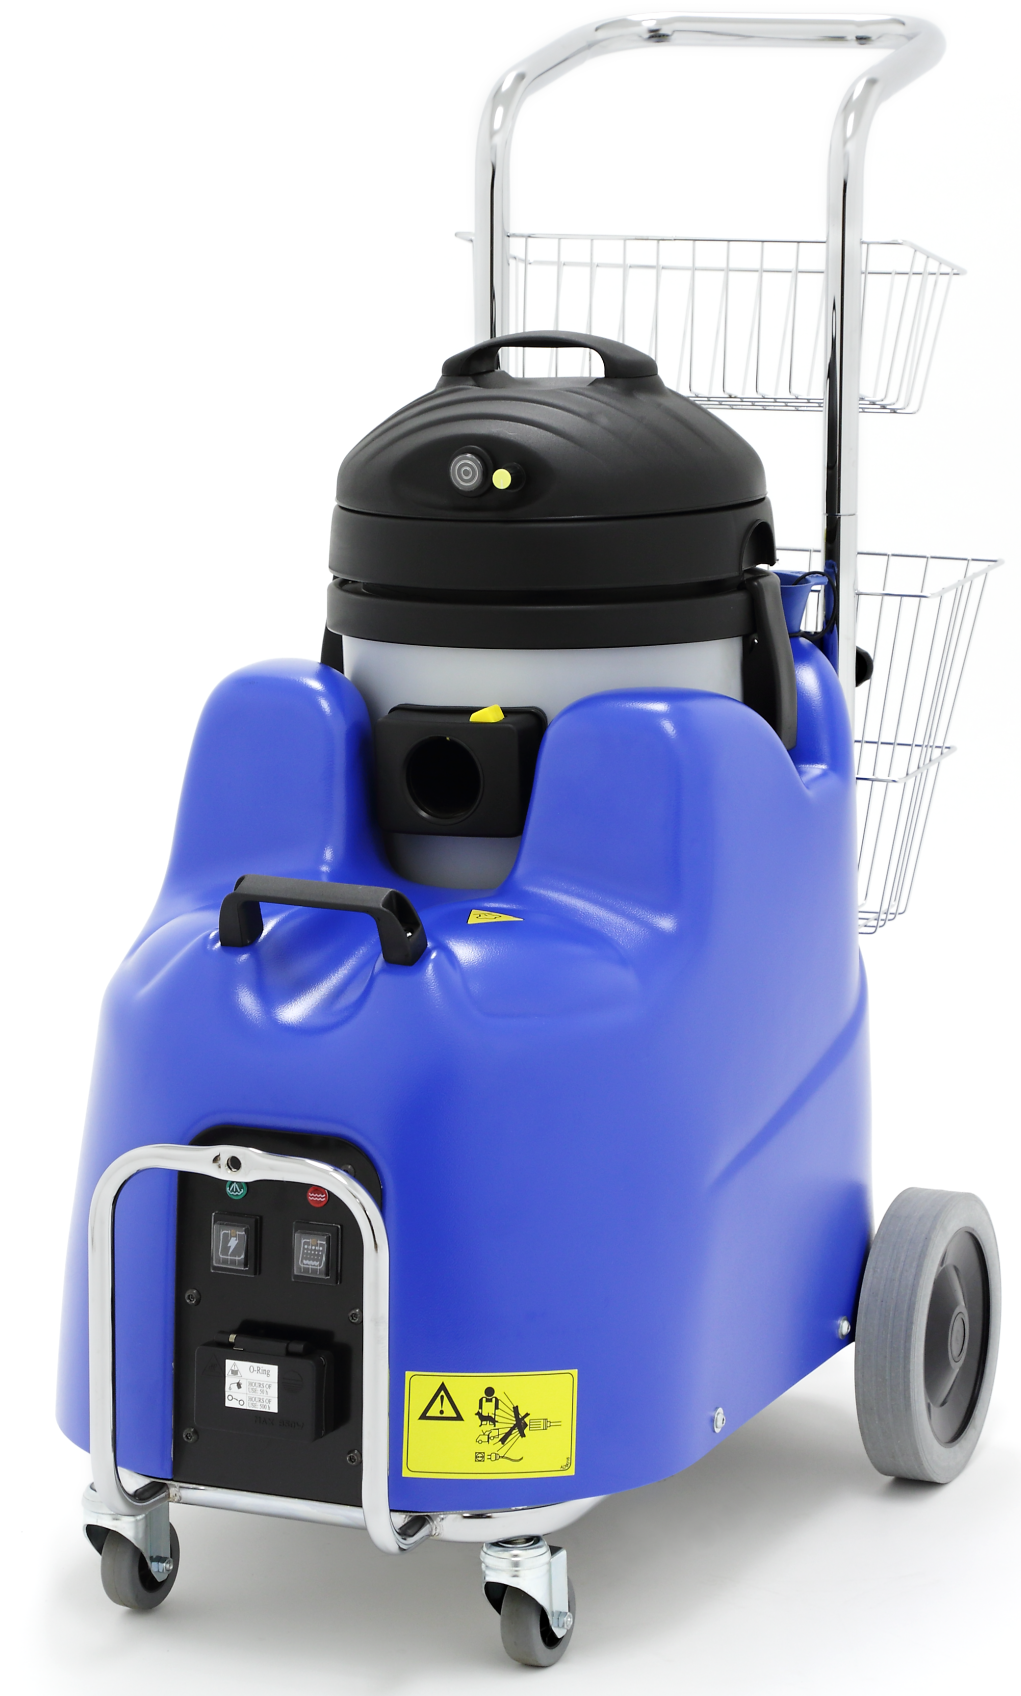 Daimer Launches Steam Cleaner For Disinfecting Clean Rooms